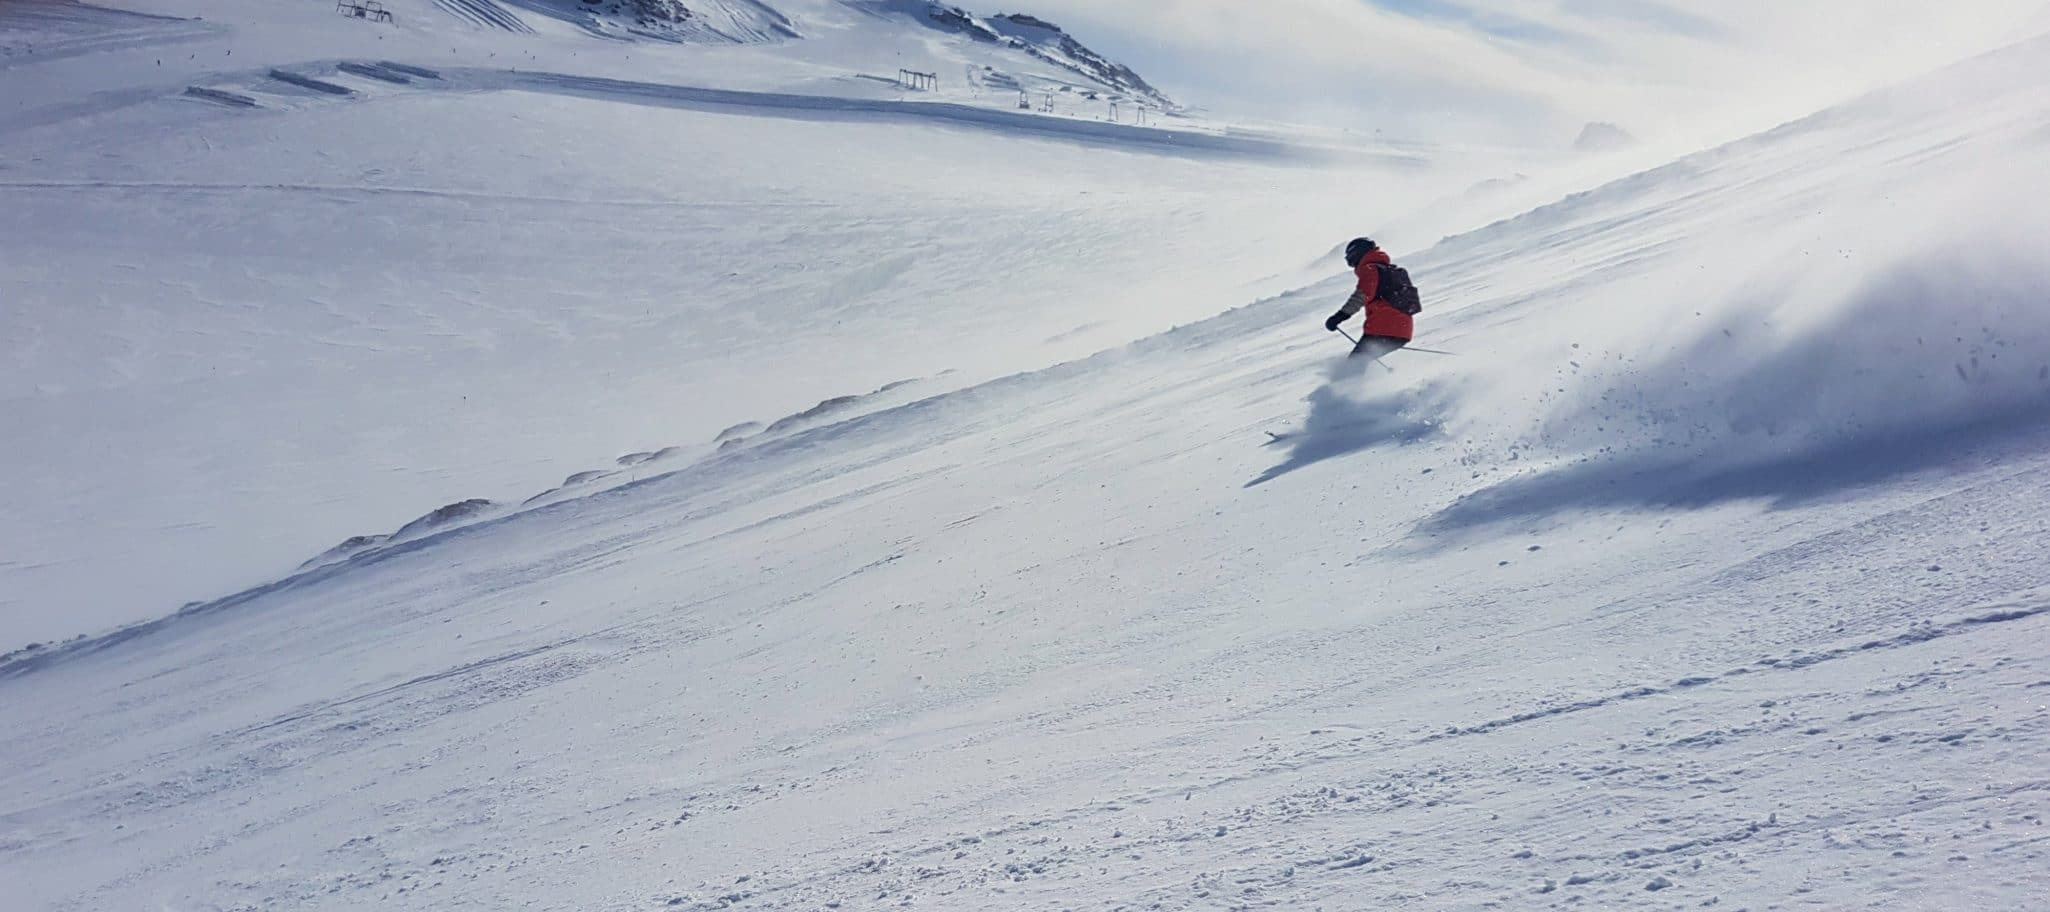 A Friend Of Skiing In The Austrian Alps.